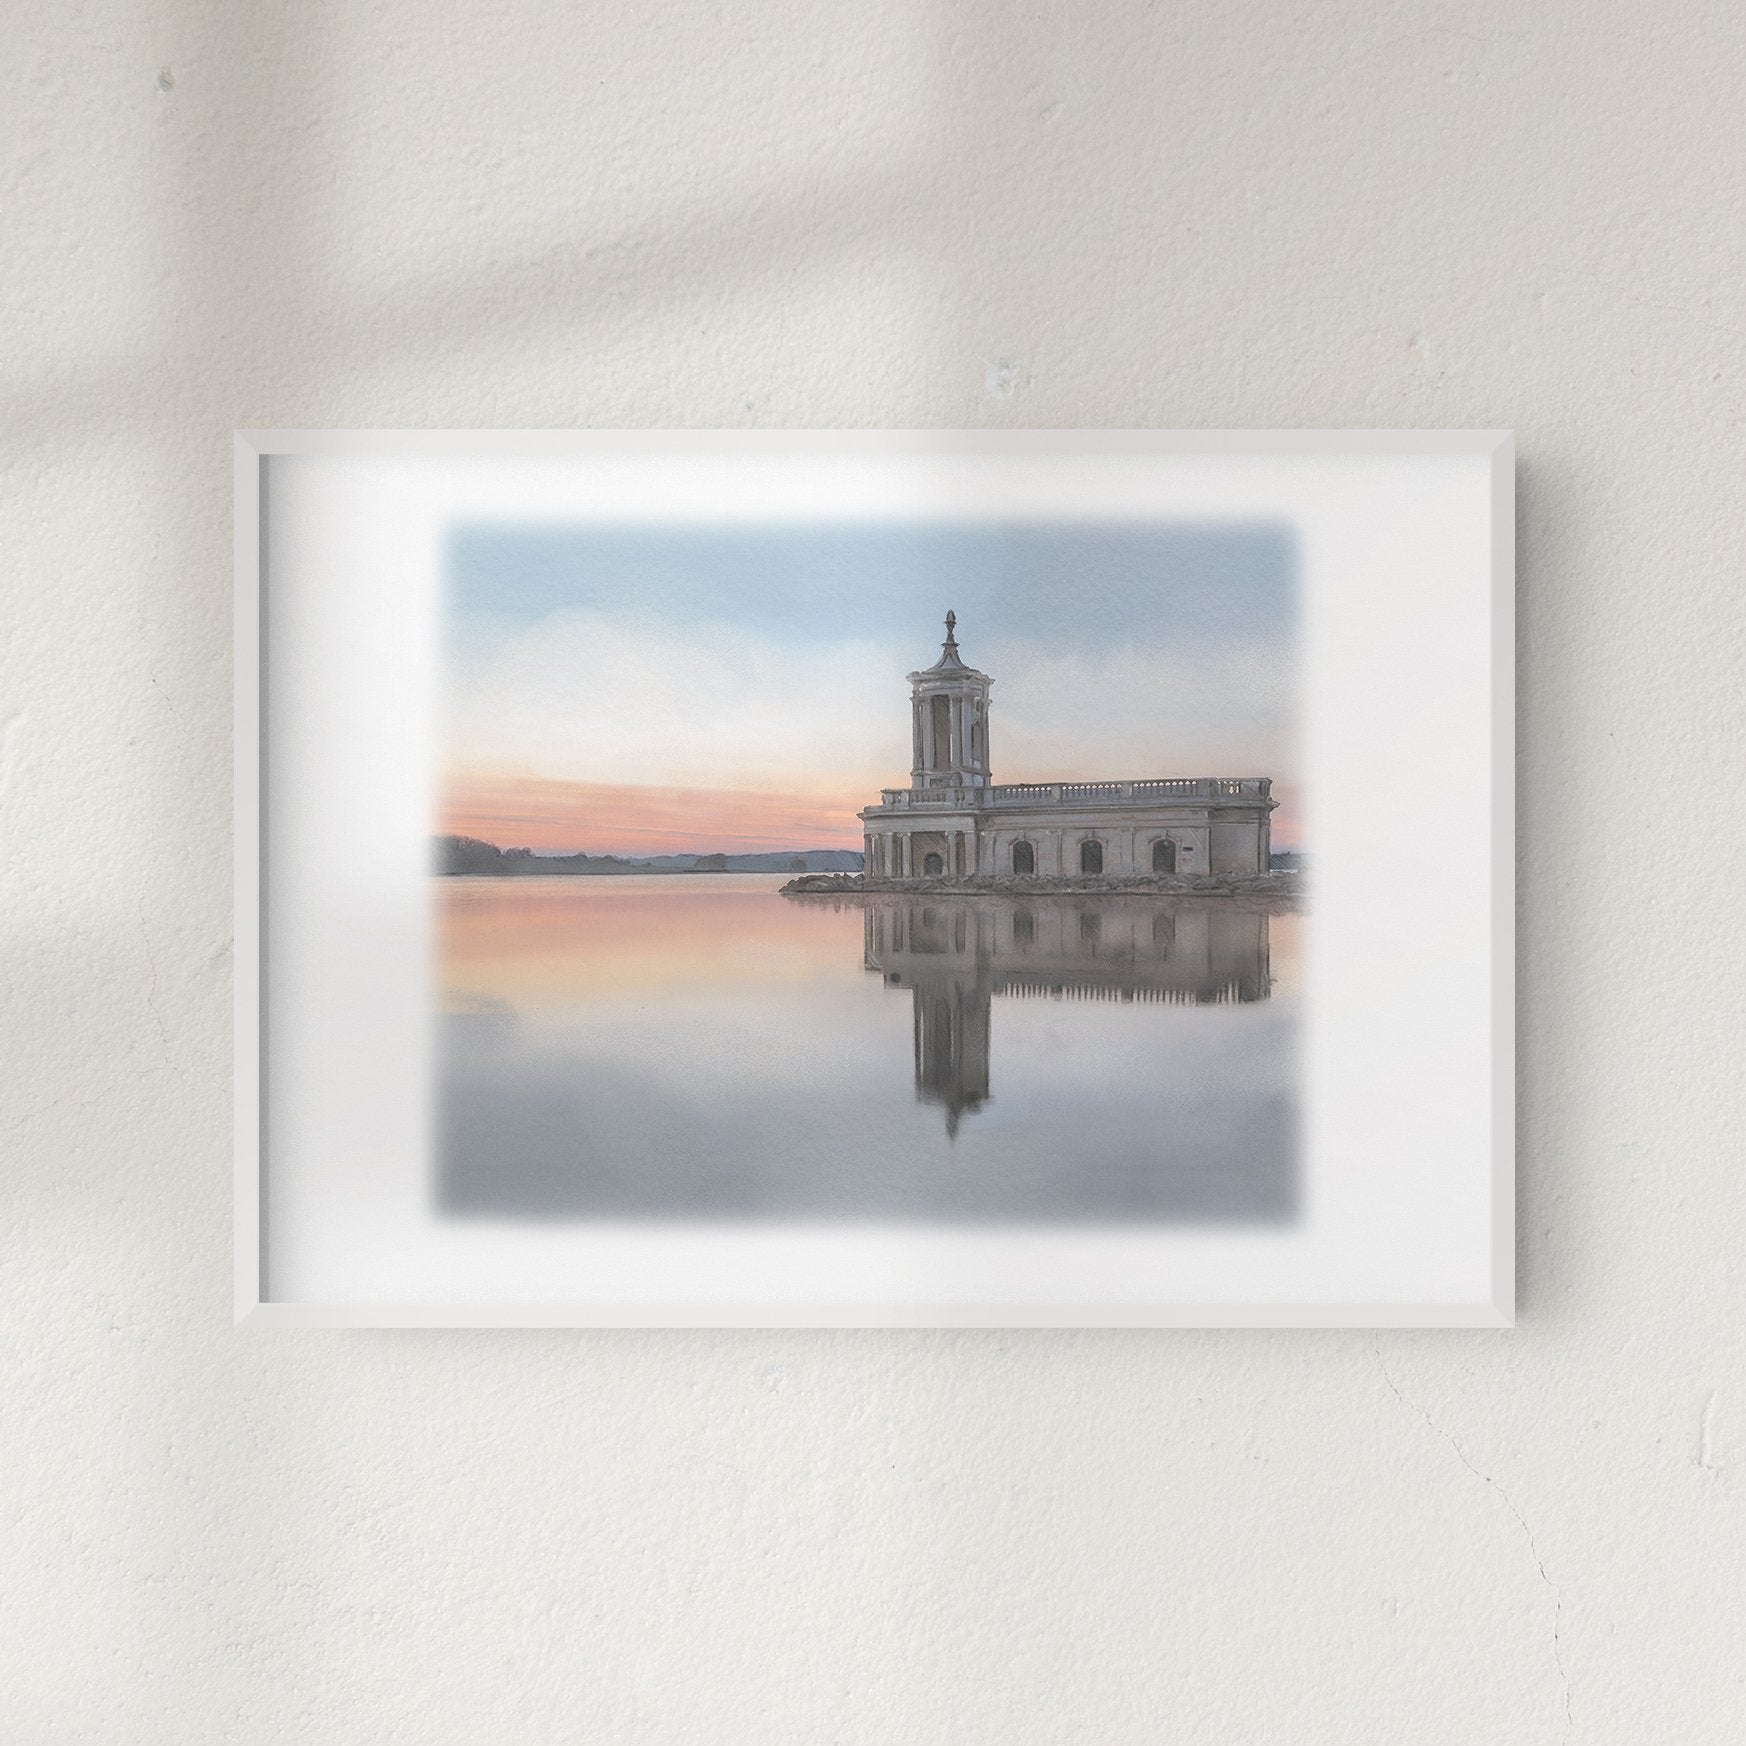 Normanton Church, Rutland Venue Portrait